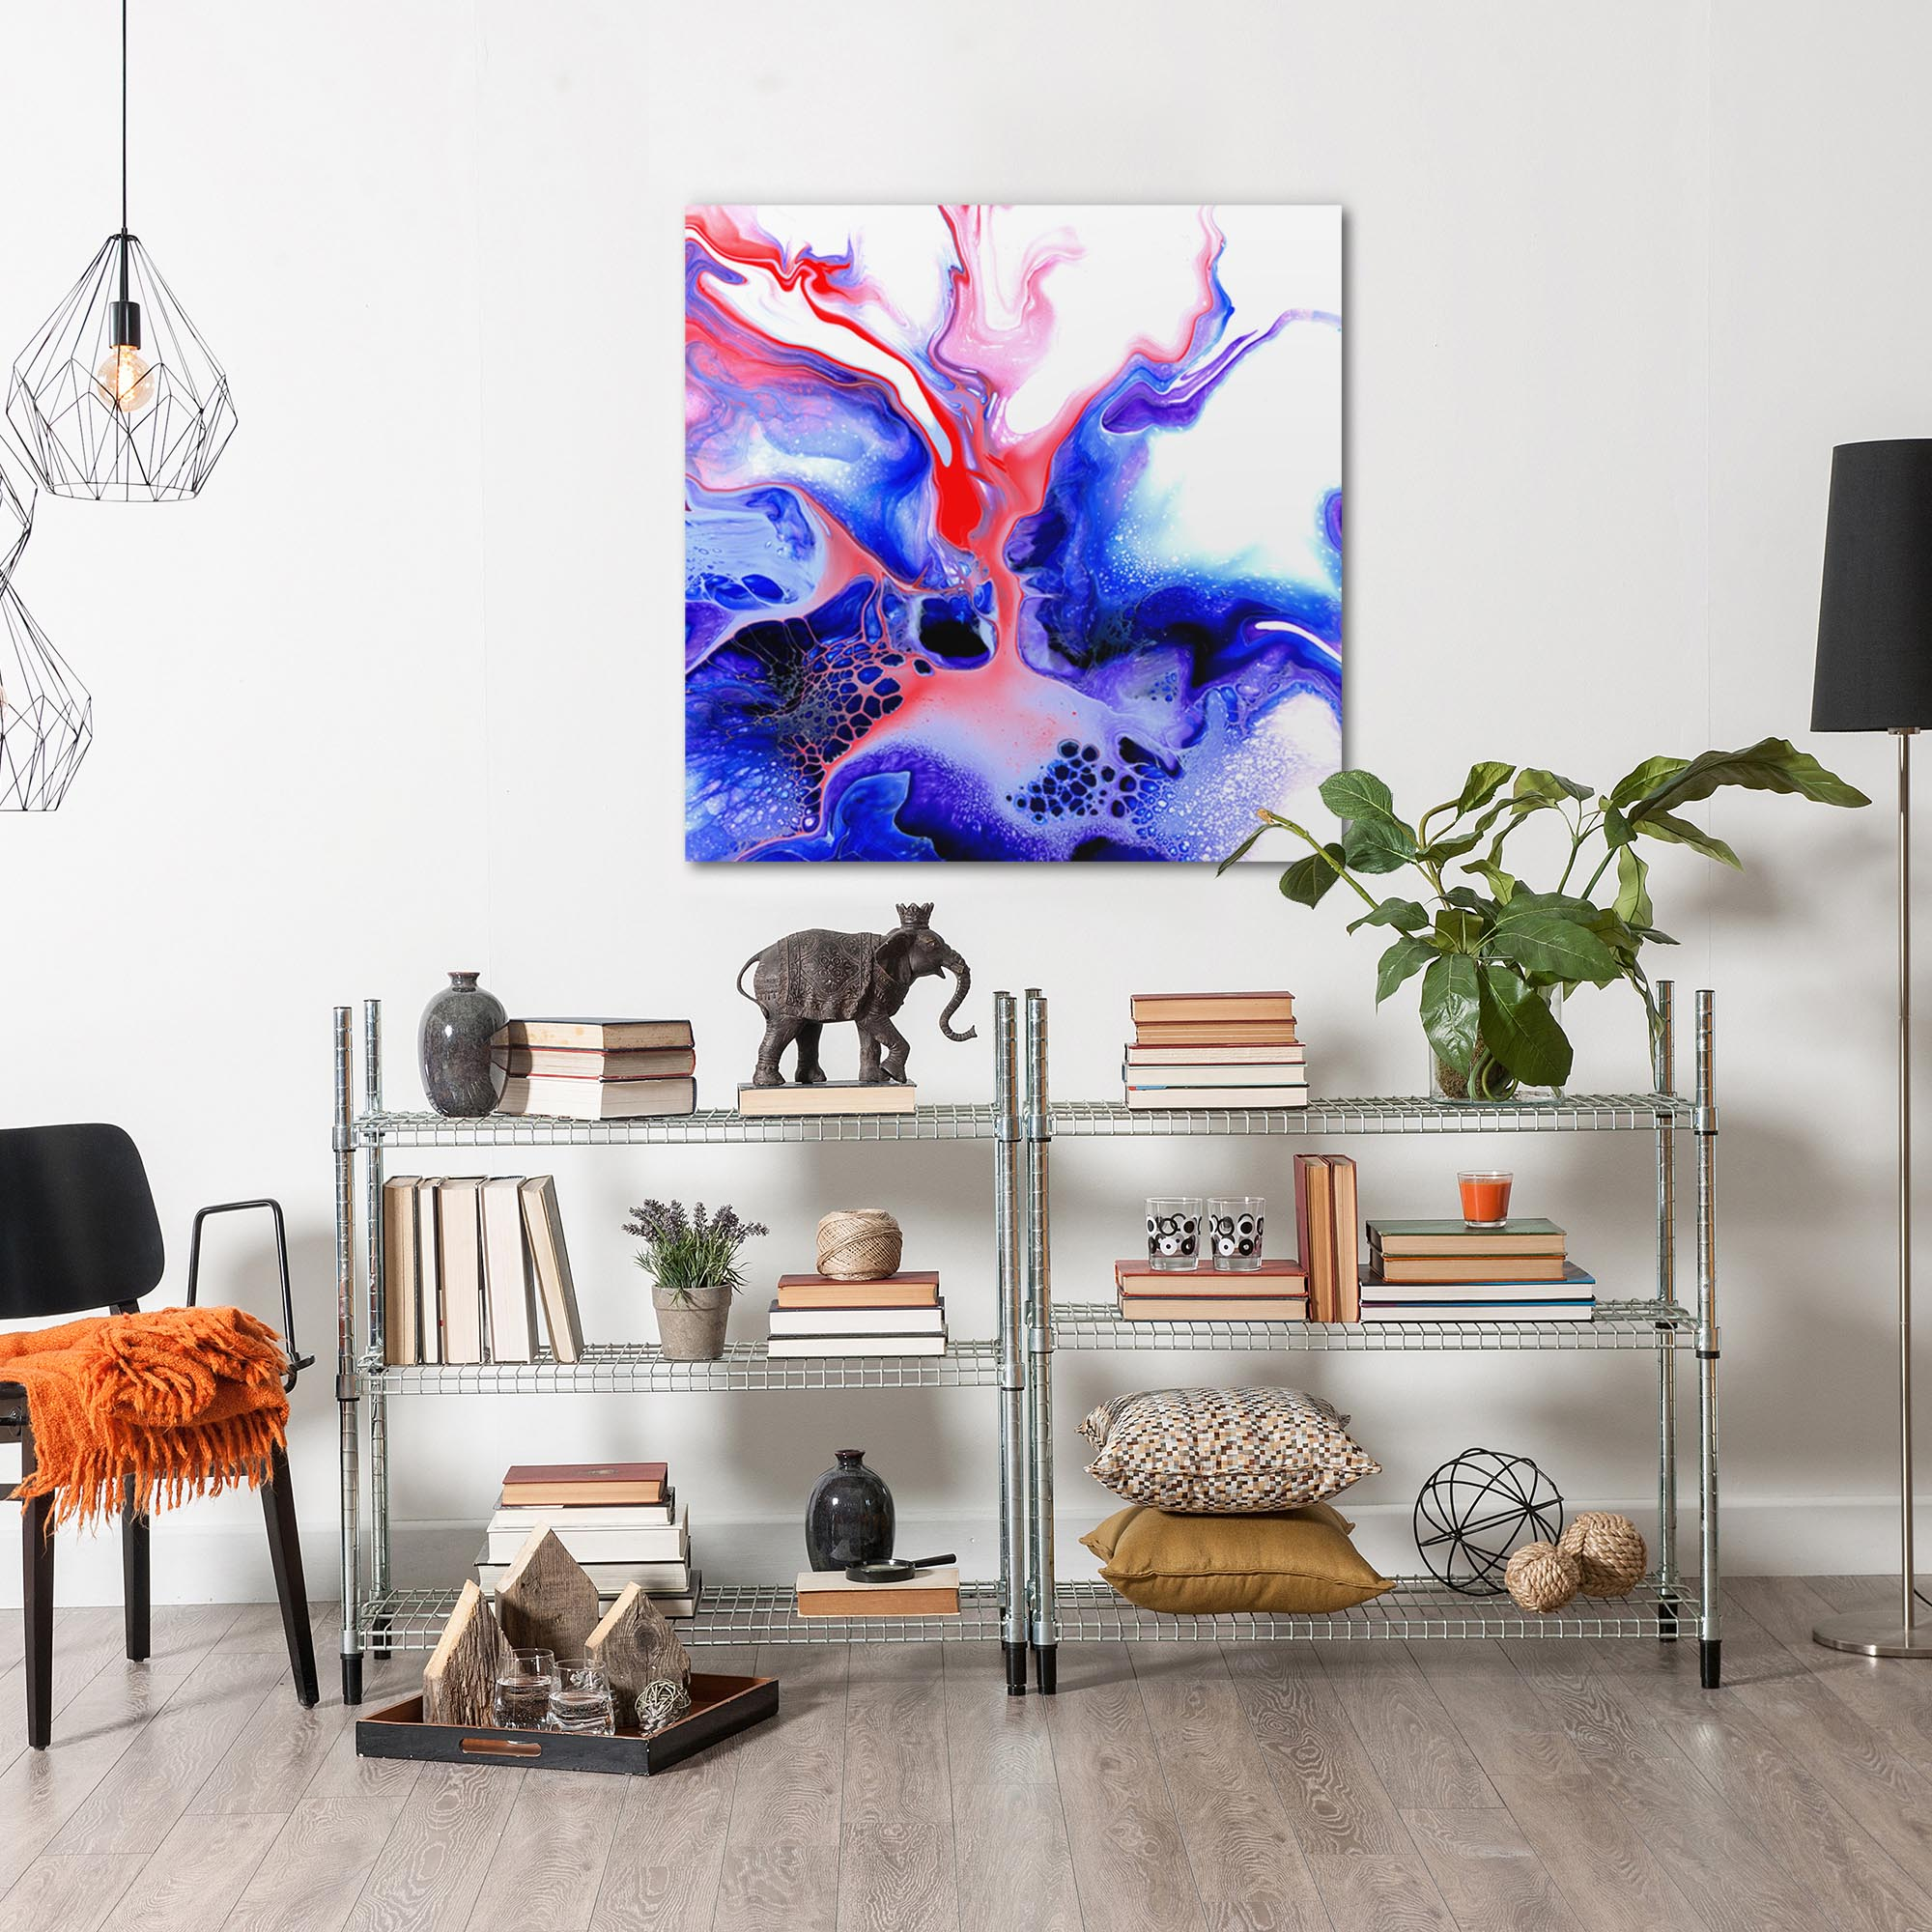 Thermal by Elana Reiter - Abstract Wall Art, Modern Home Decor (36in x 36in) - Image 3